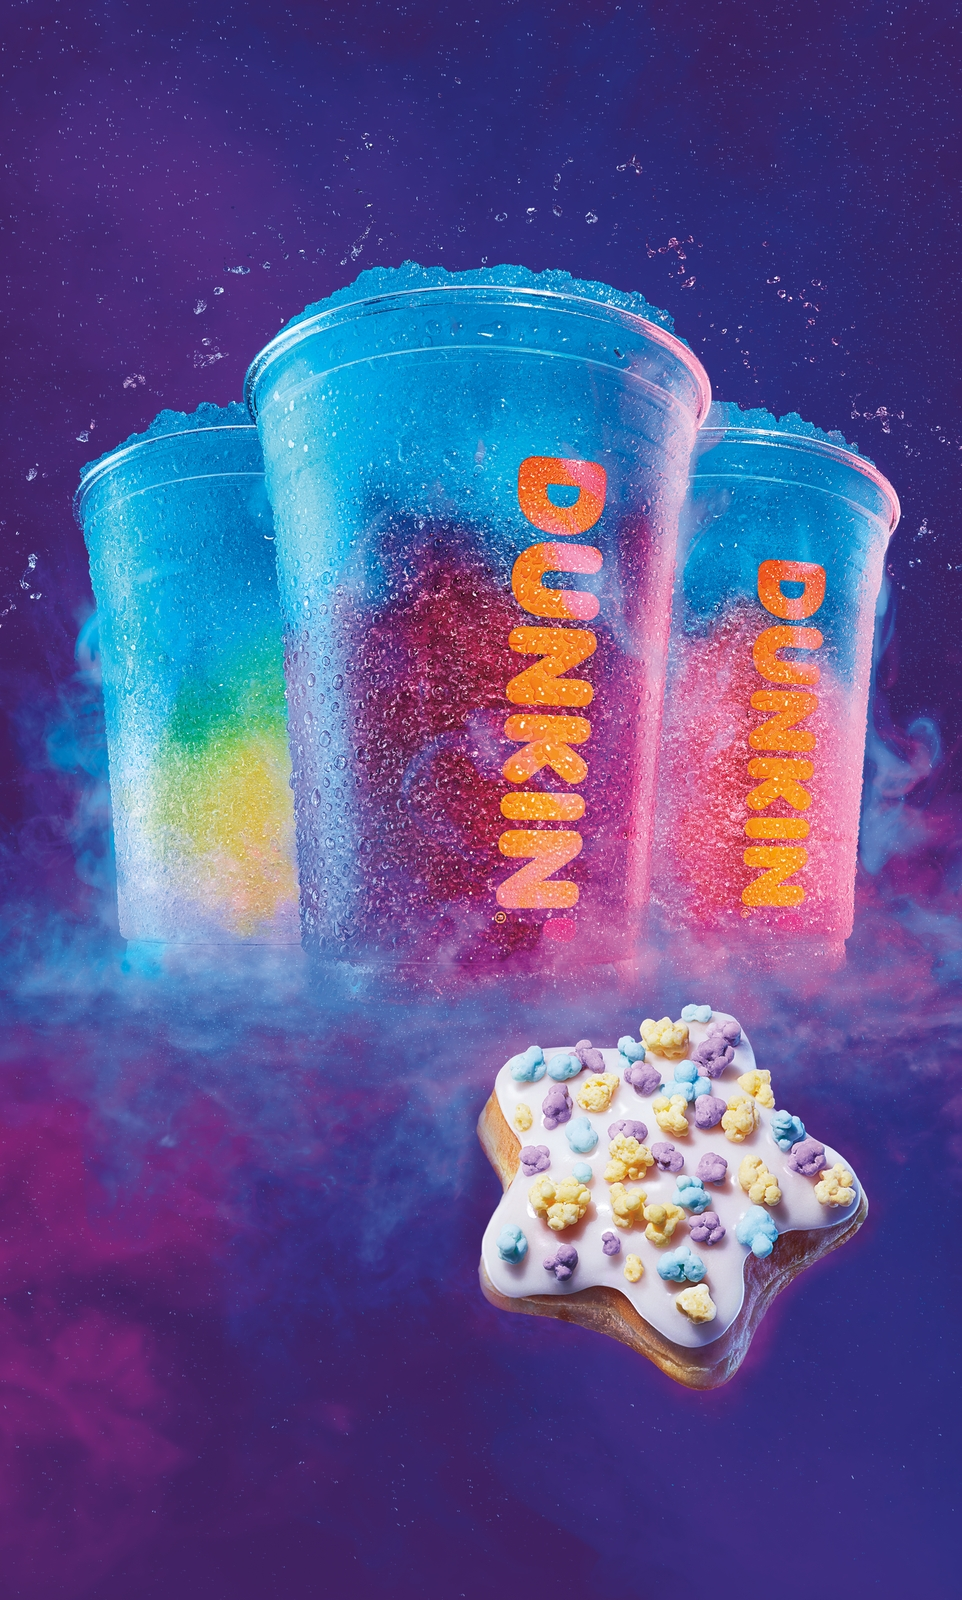 Dunkin's Out-of-This-World Seasonal Menu Features Cosmic COOLATTA® Frozen Beverages and Baskin-Robbins Ice Cream Flavored Coffees